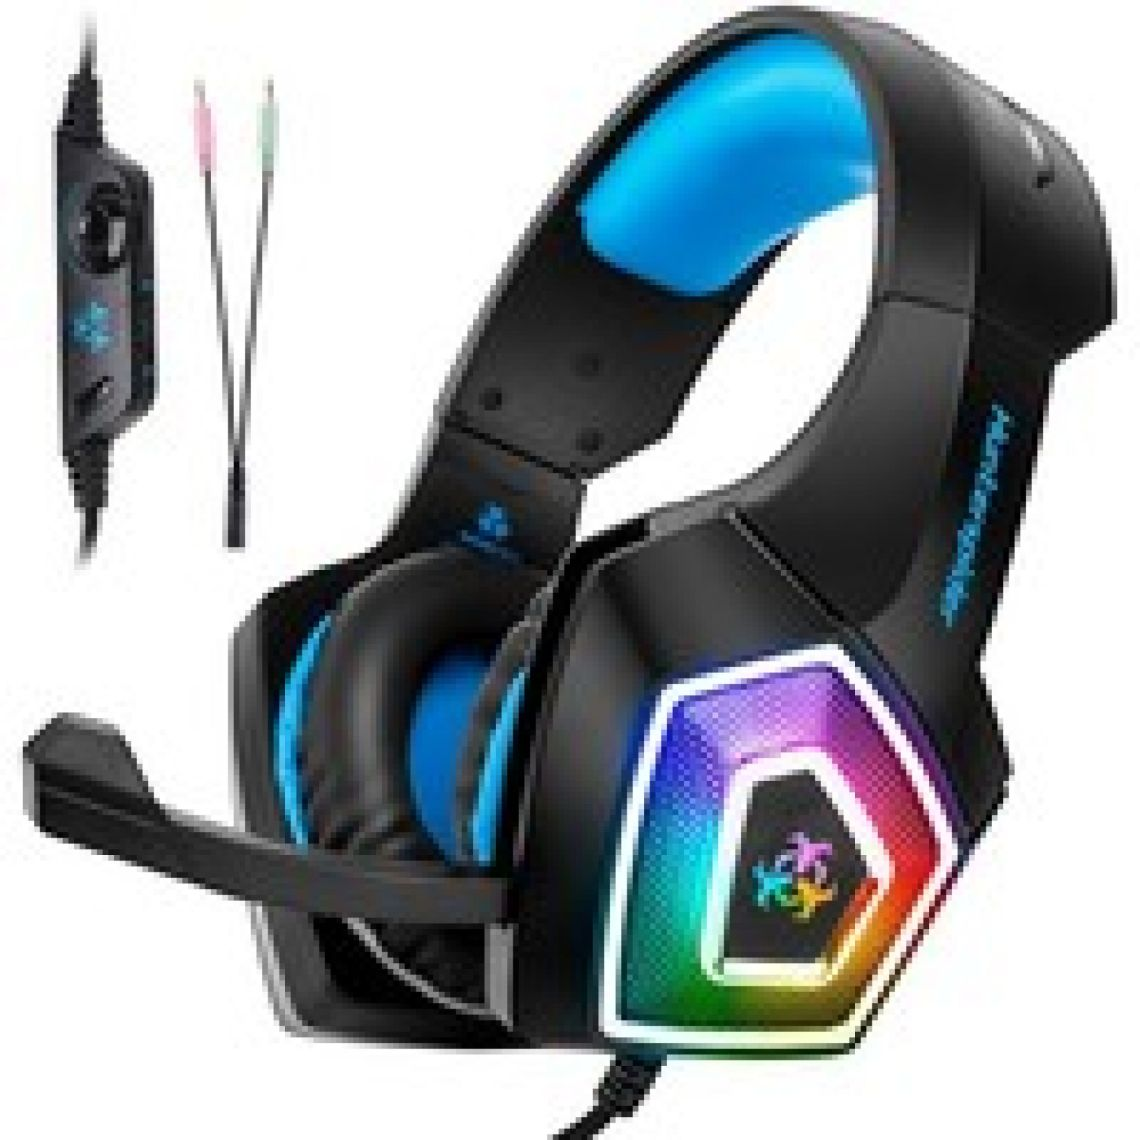 Wish | Gaming Headset with Mic for Xbox One PS4 PC Nintendo Switch Tablet Smartphone, Headphones Stereo Over Ear Bass 3.5mm Microphone Noise Canceling 7 LED Light Soft Memory Earmuffs